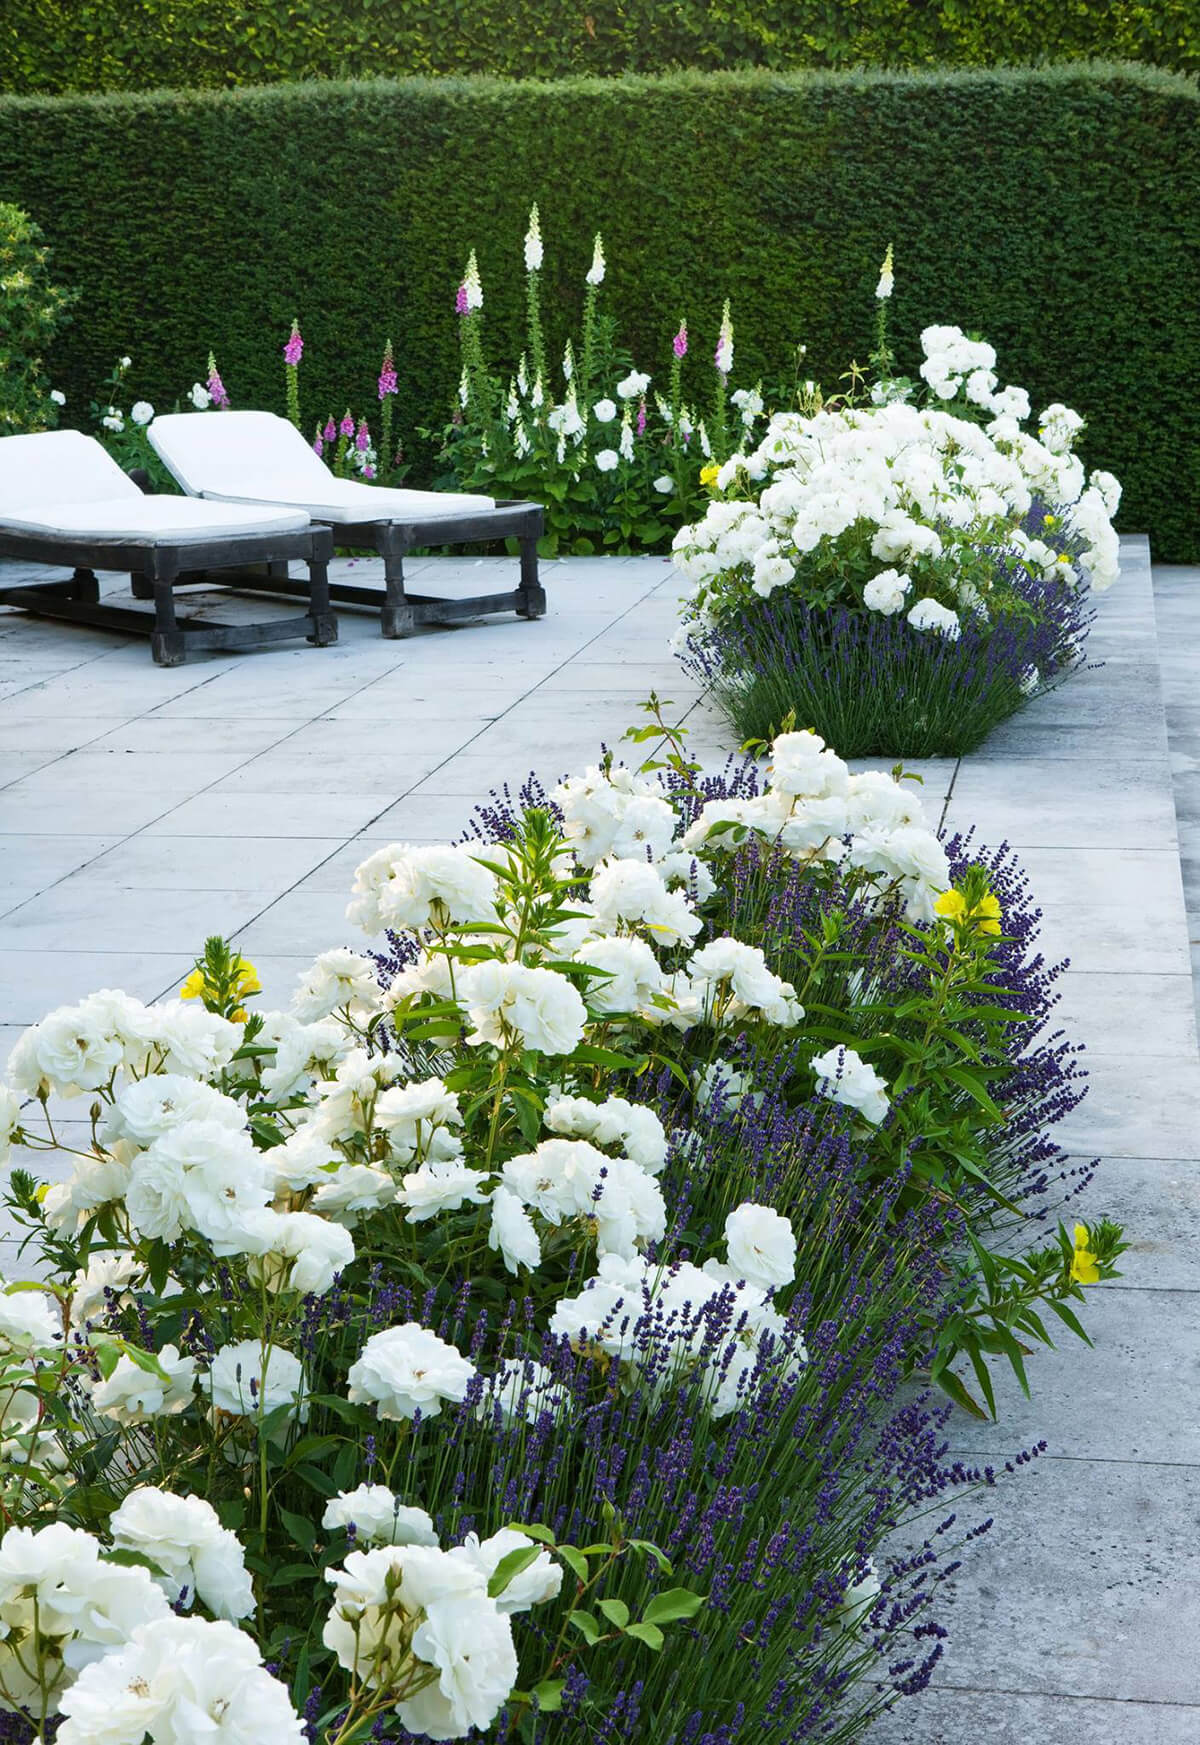 27 Best Flower Bed Ideas (Decorations and Designs) for 2020 on Flower Bed Ideas Backyard id=92671